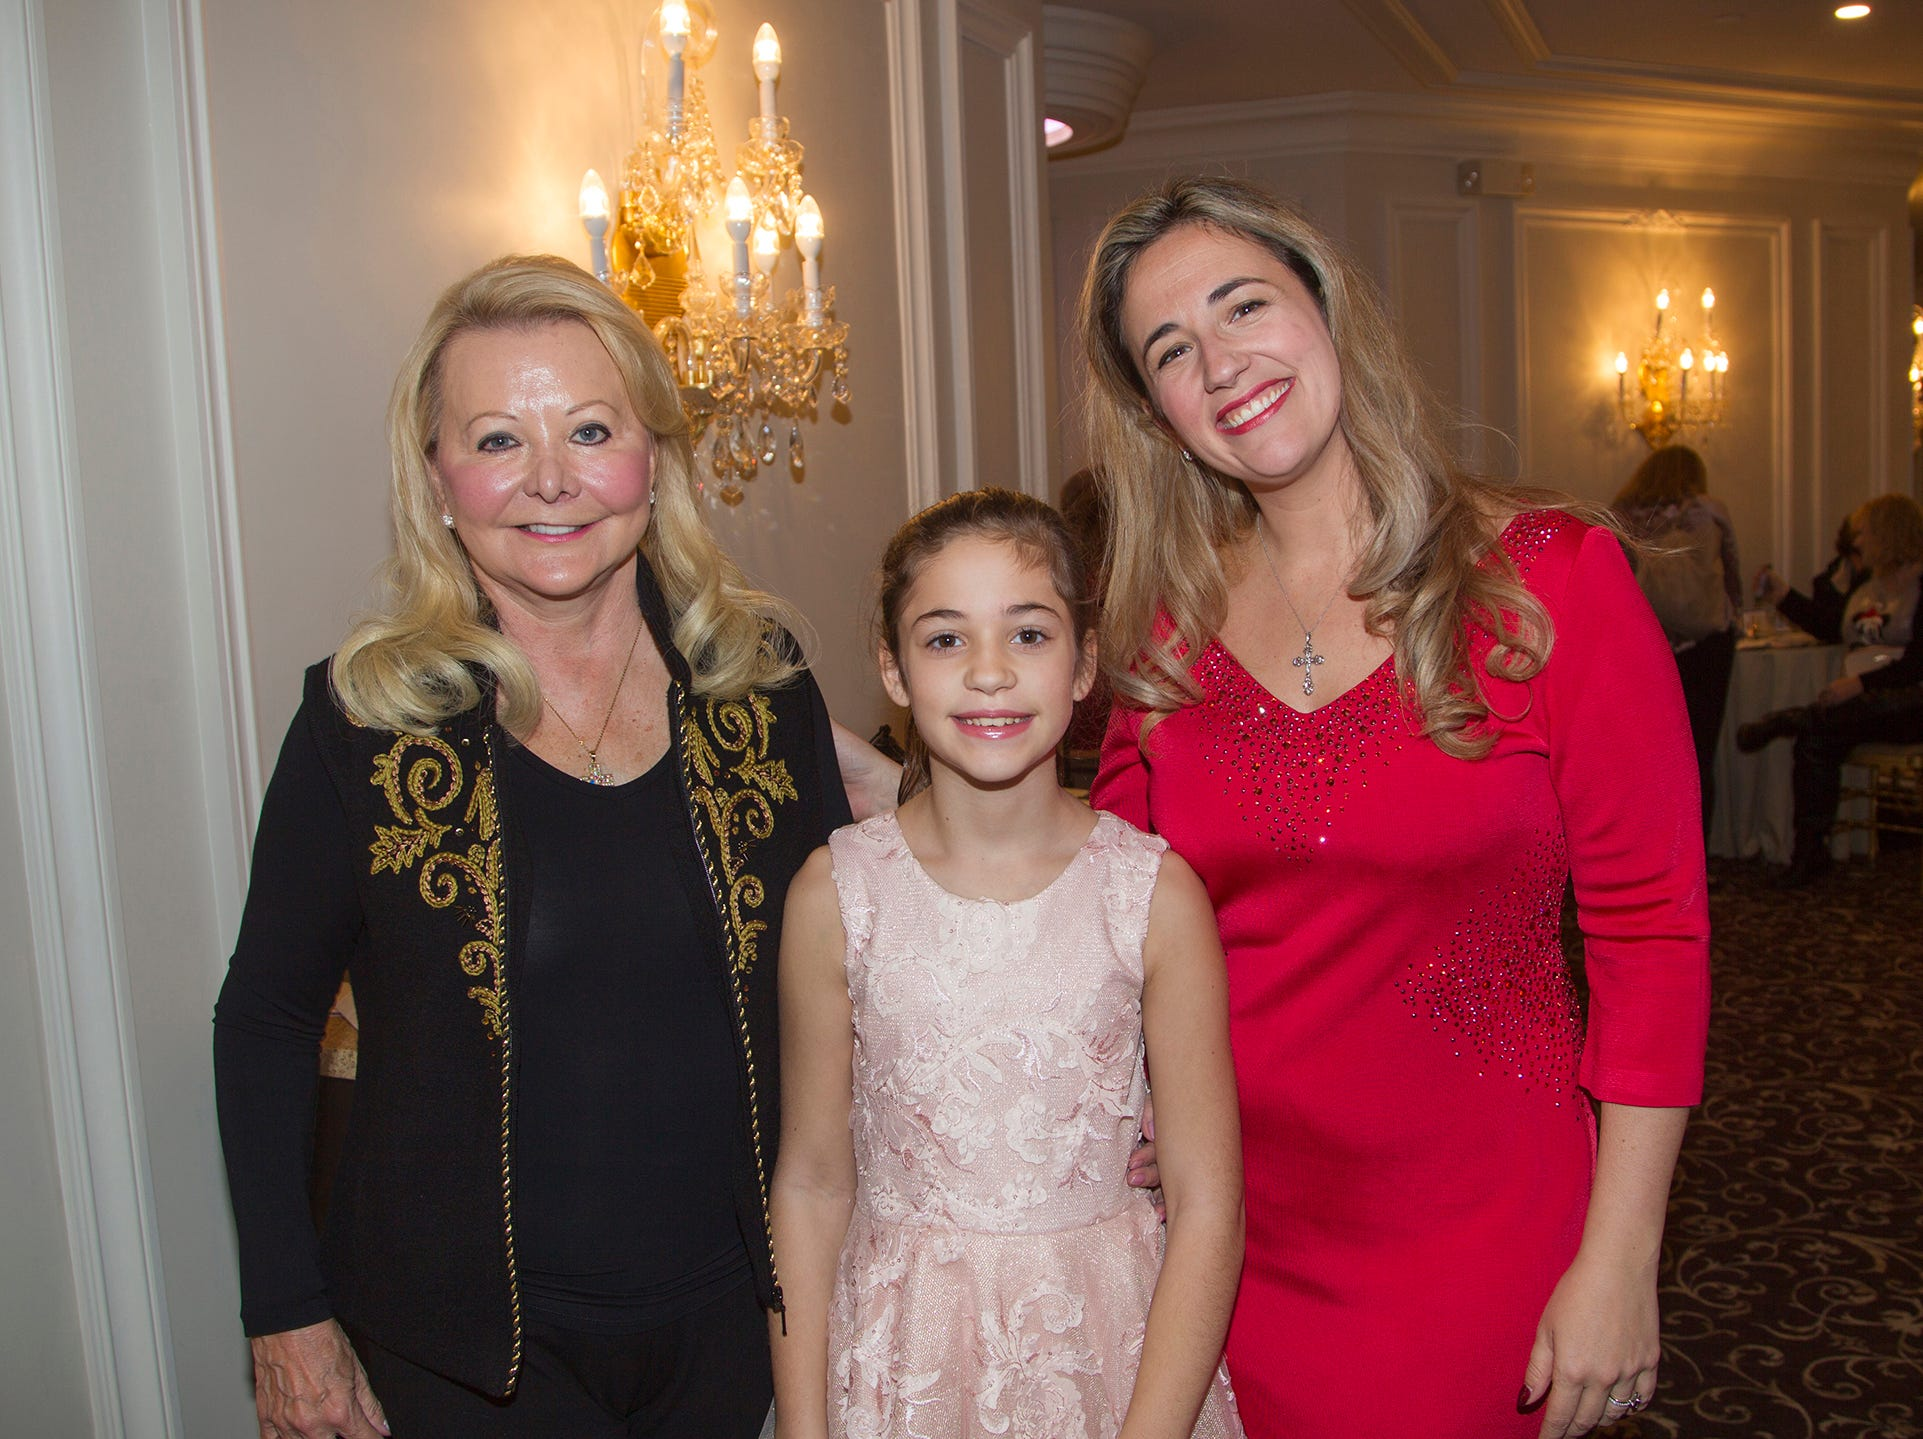 Janet Martin, Lily, Amy Rose Taylor. Immaculate Heart Academy held its annual Fashion Show fundraiser at Florentine Gardens in River Vale. 12/02/2018